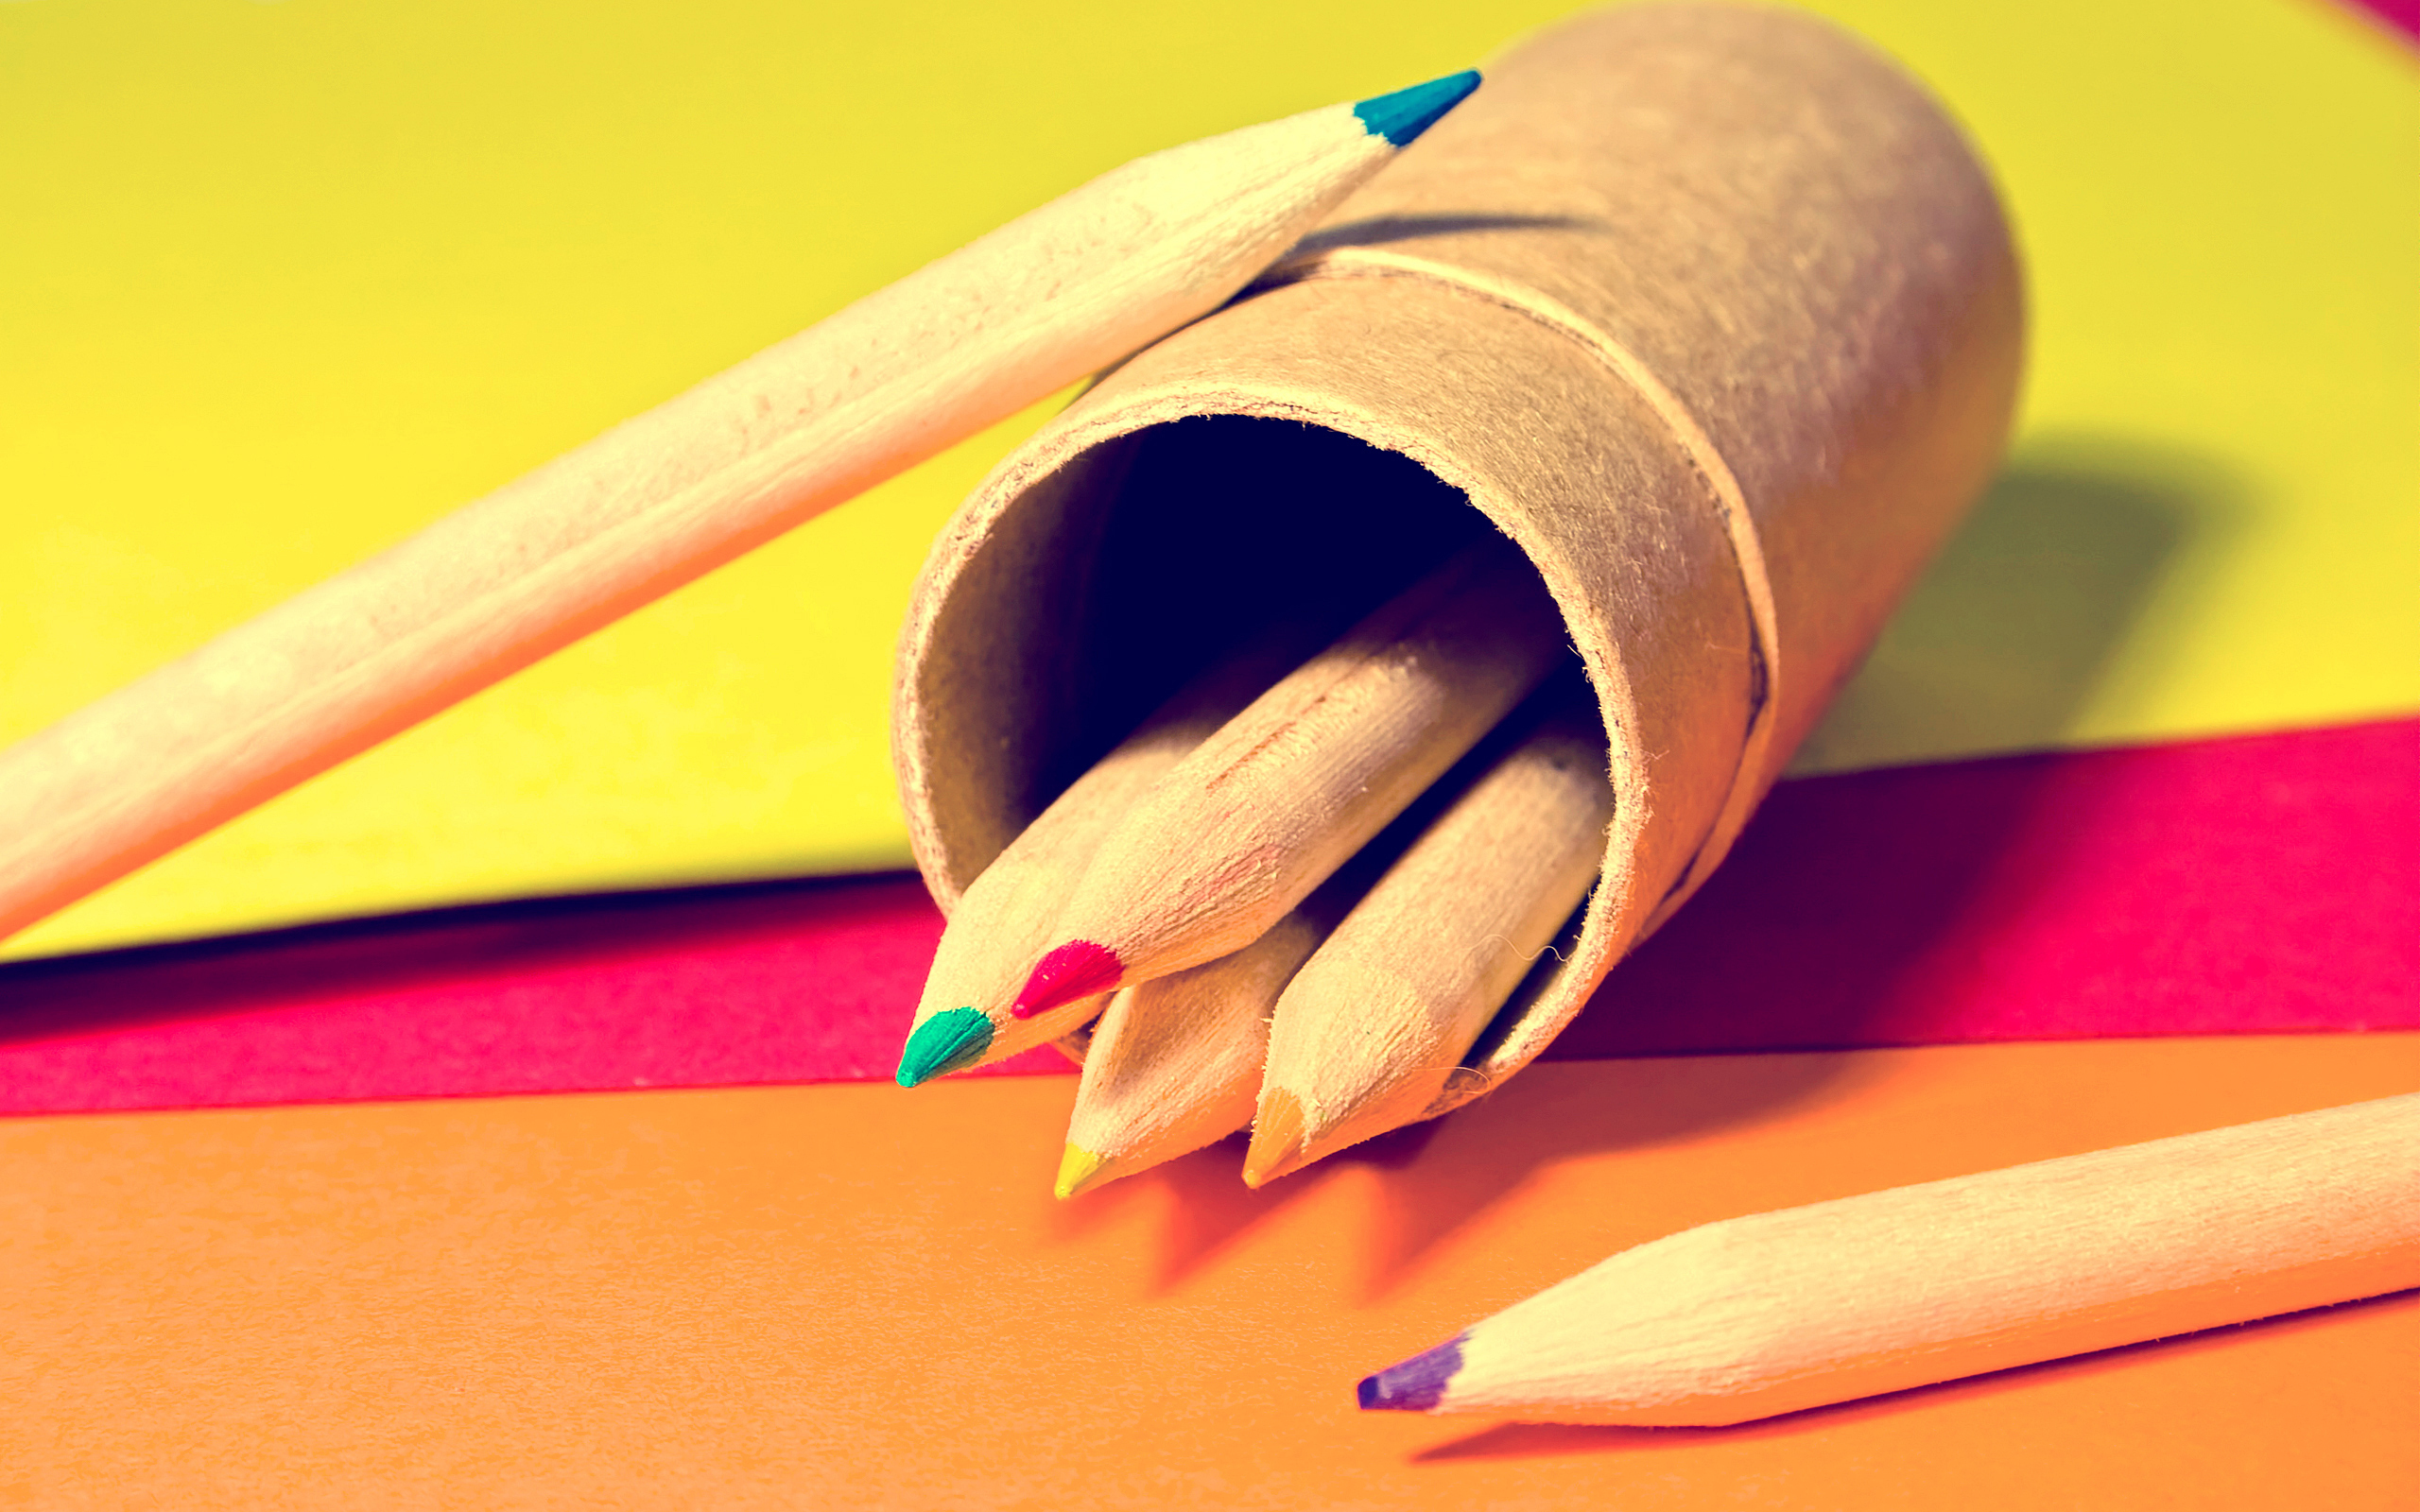 School Supplies Wallpaper 40830 2560x1600 px HDWallSourcecom